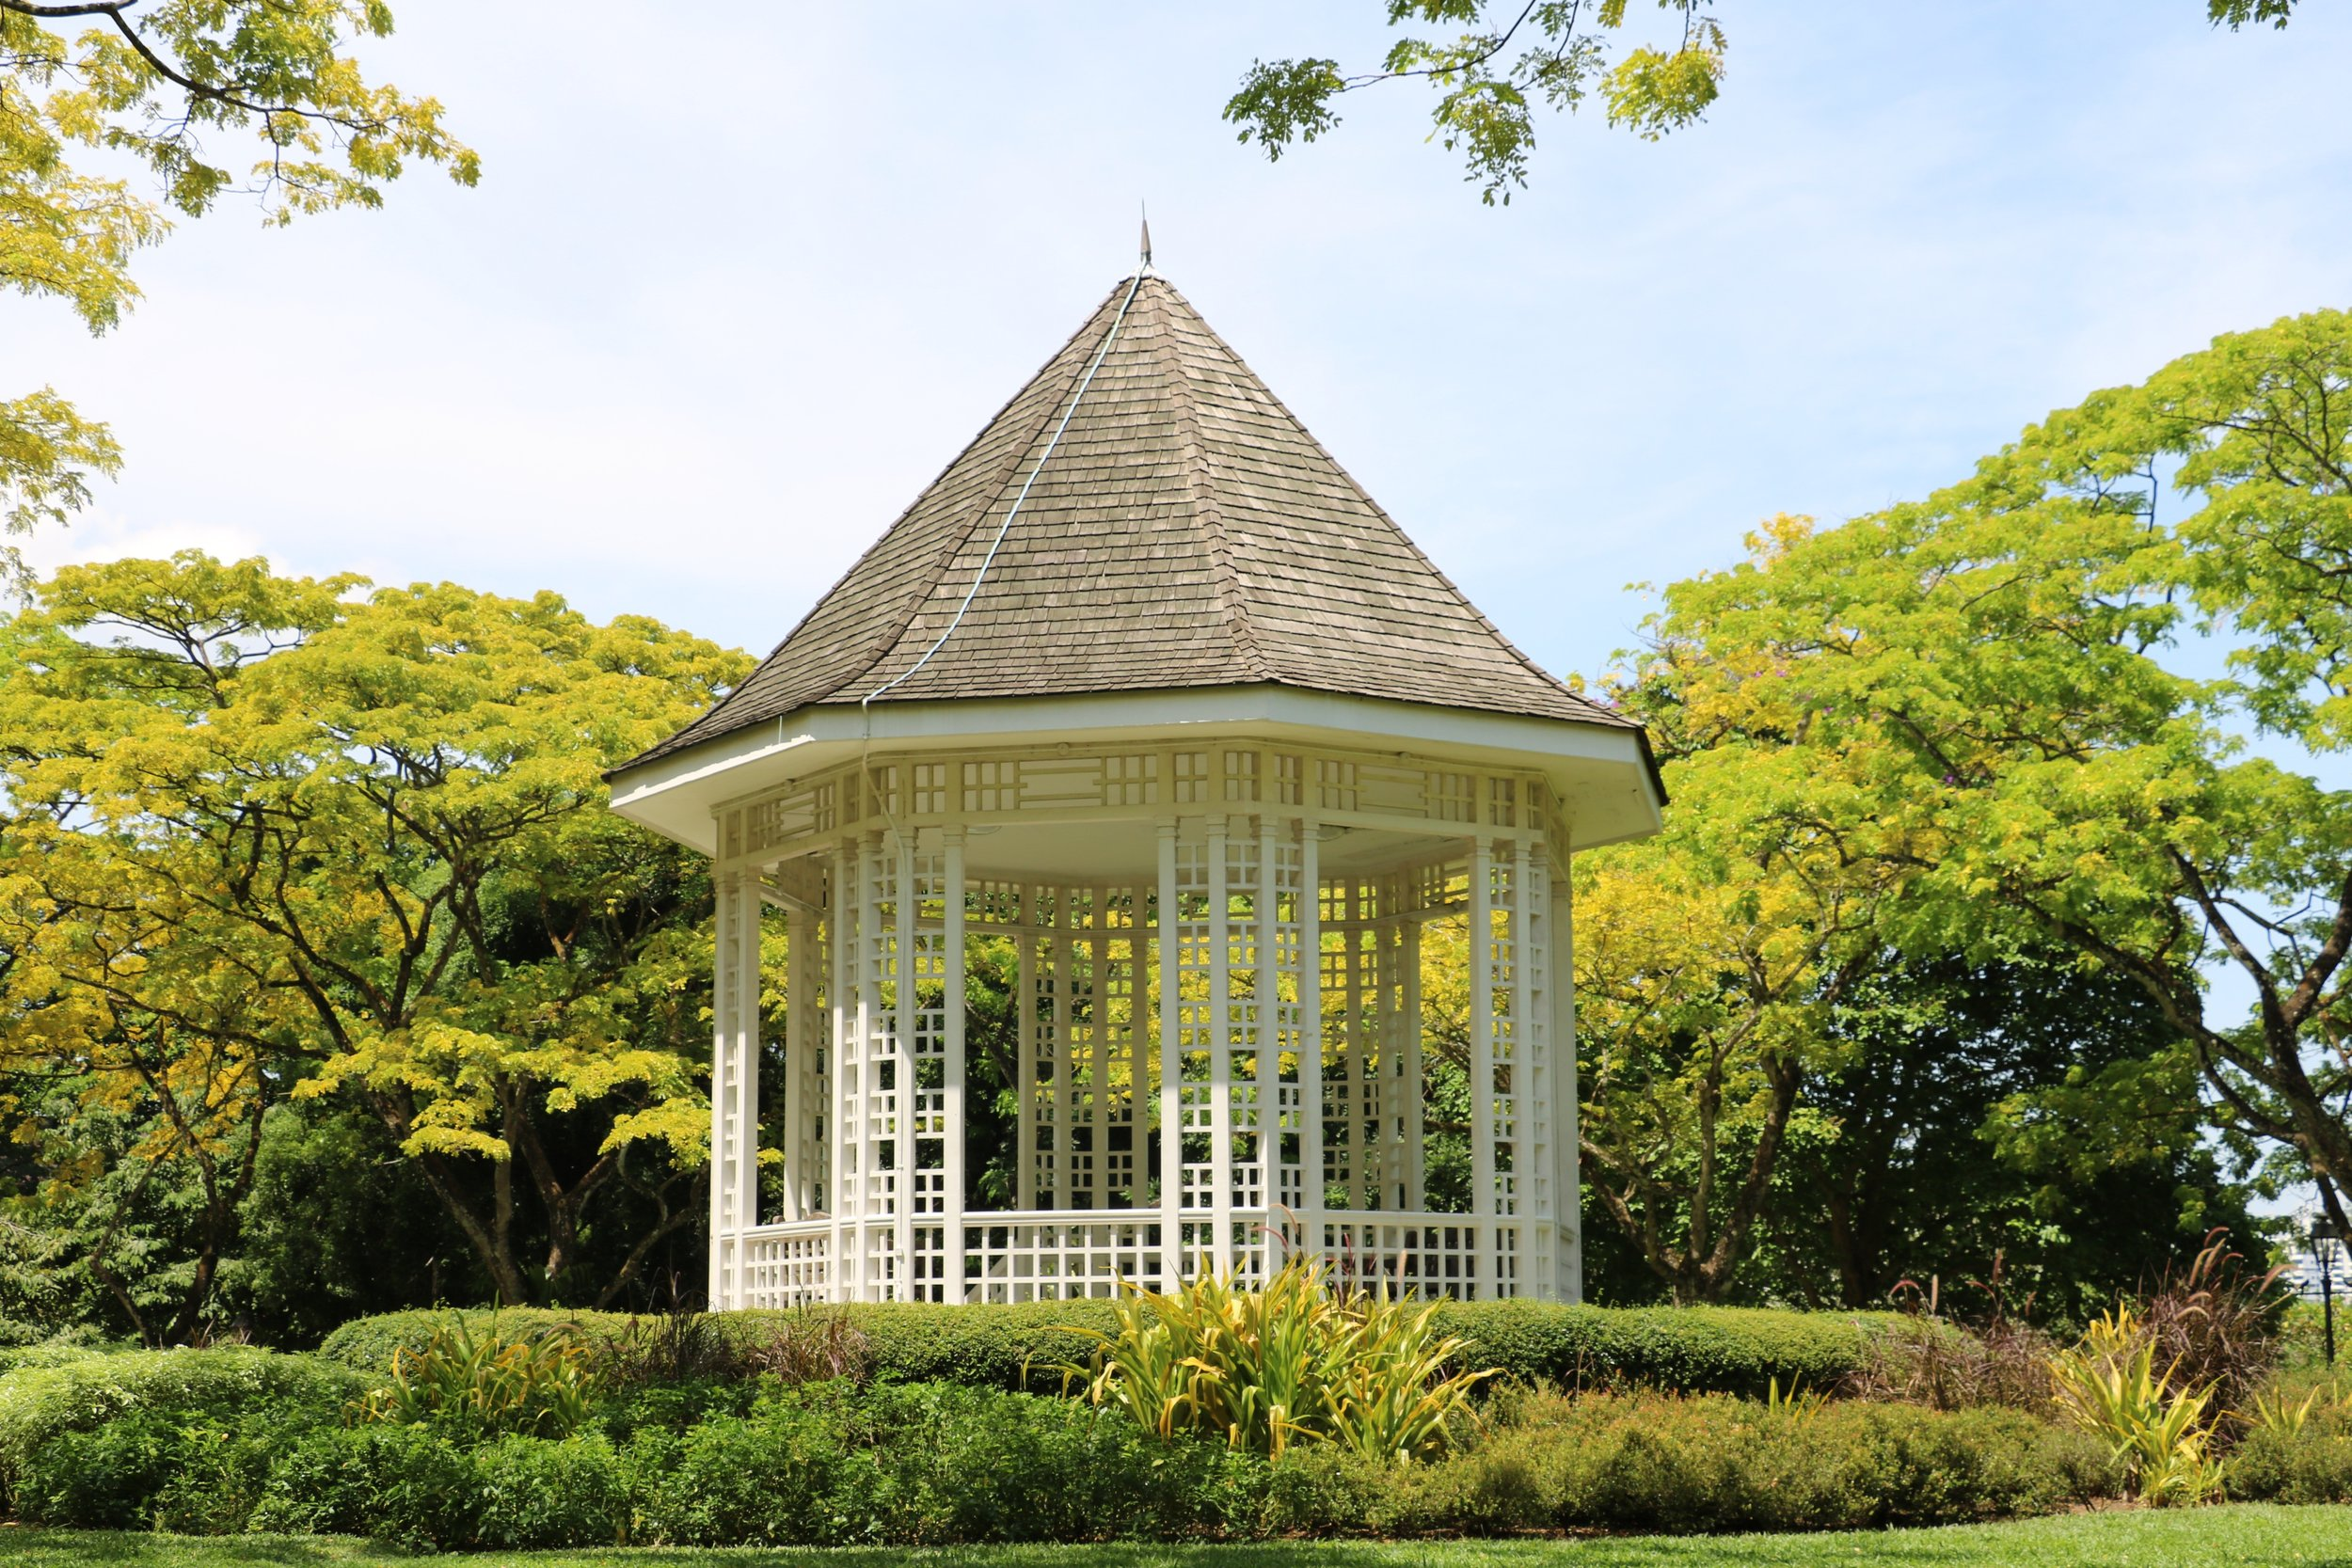 architecture-garden-gazebo-164260 house home.jpg